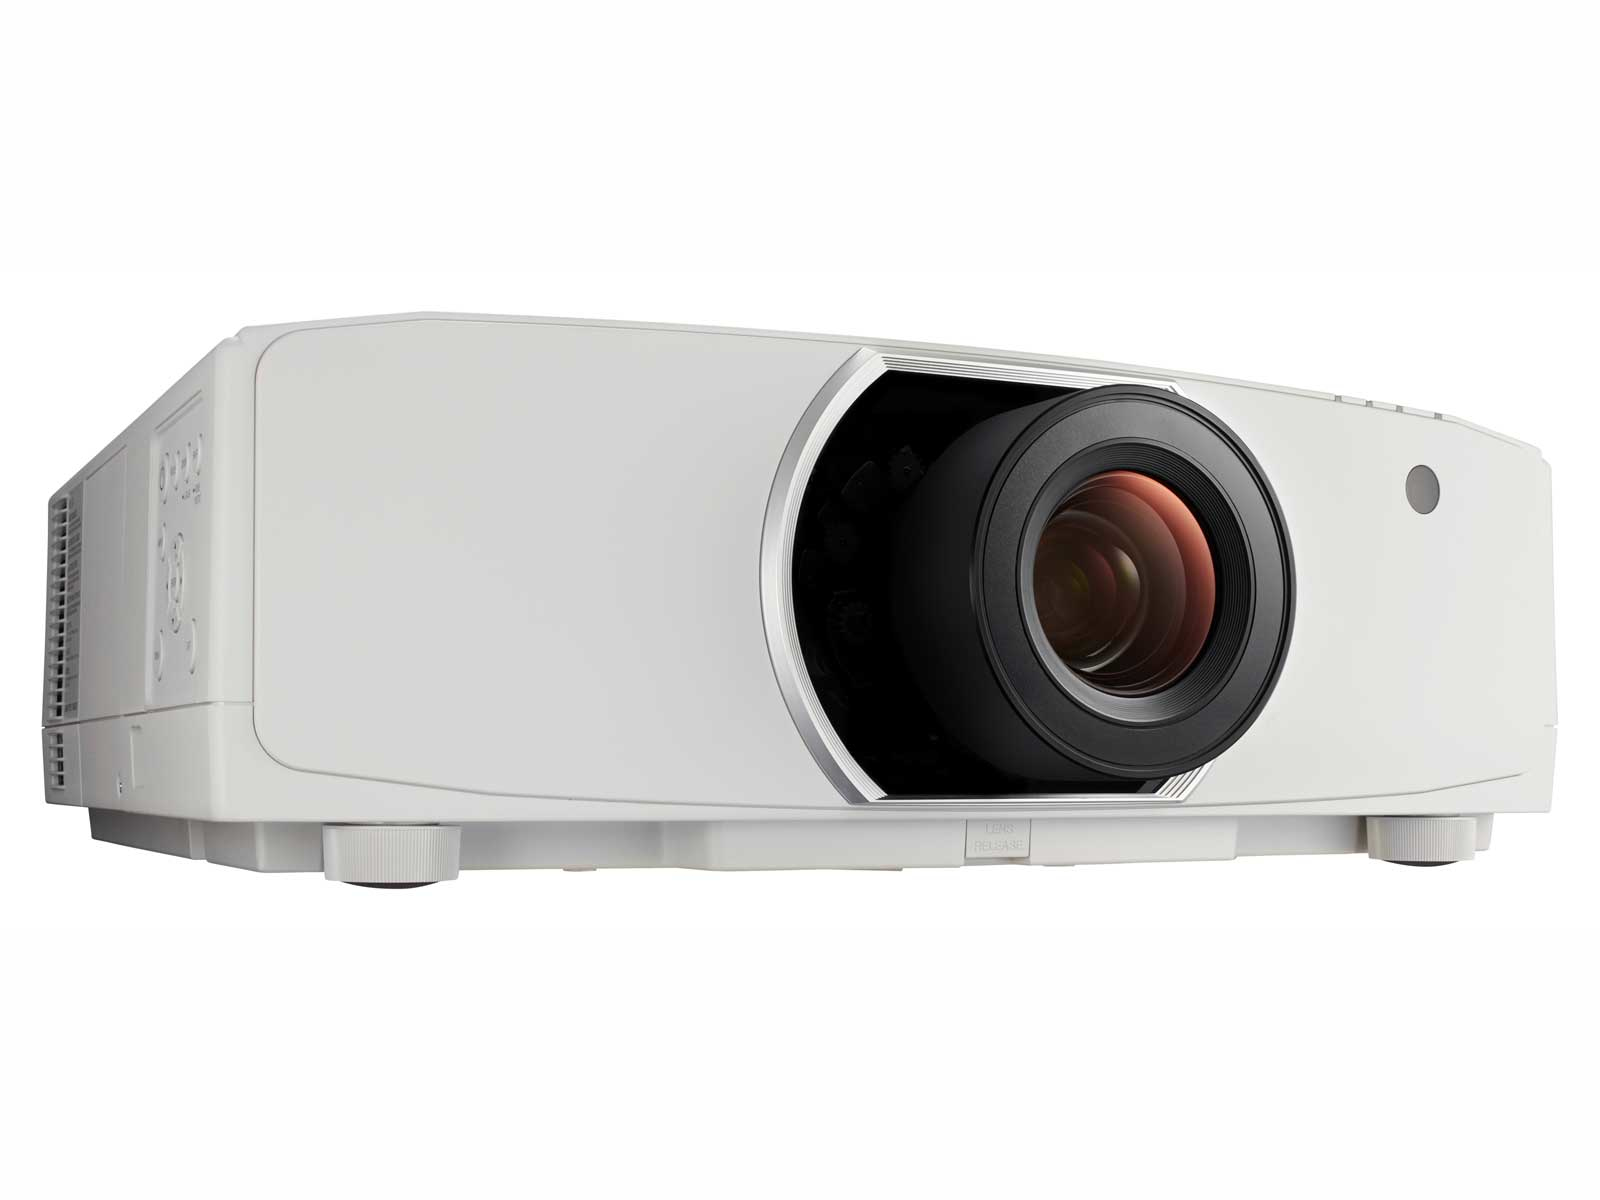 Pa903x Projector Incl. Np13zl Lens